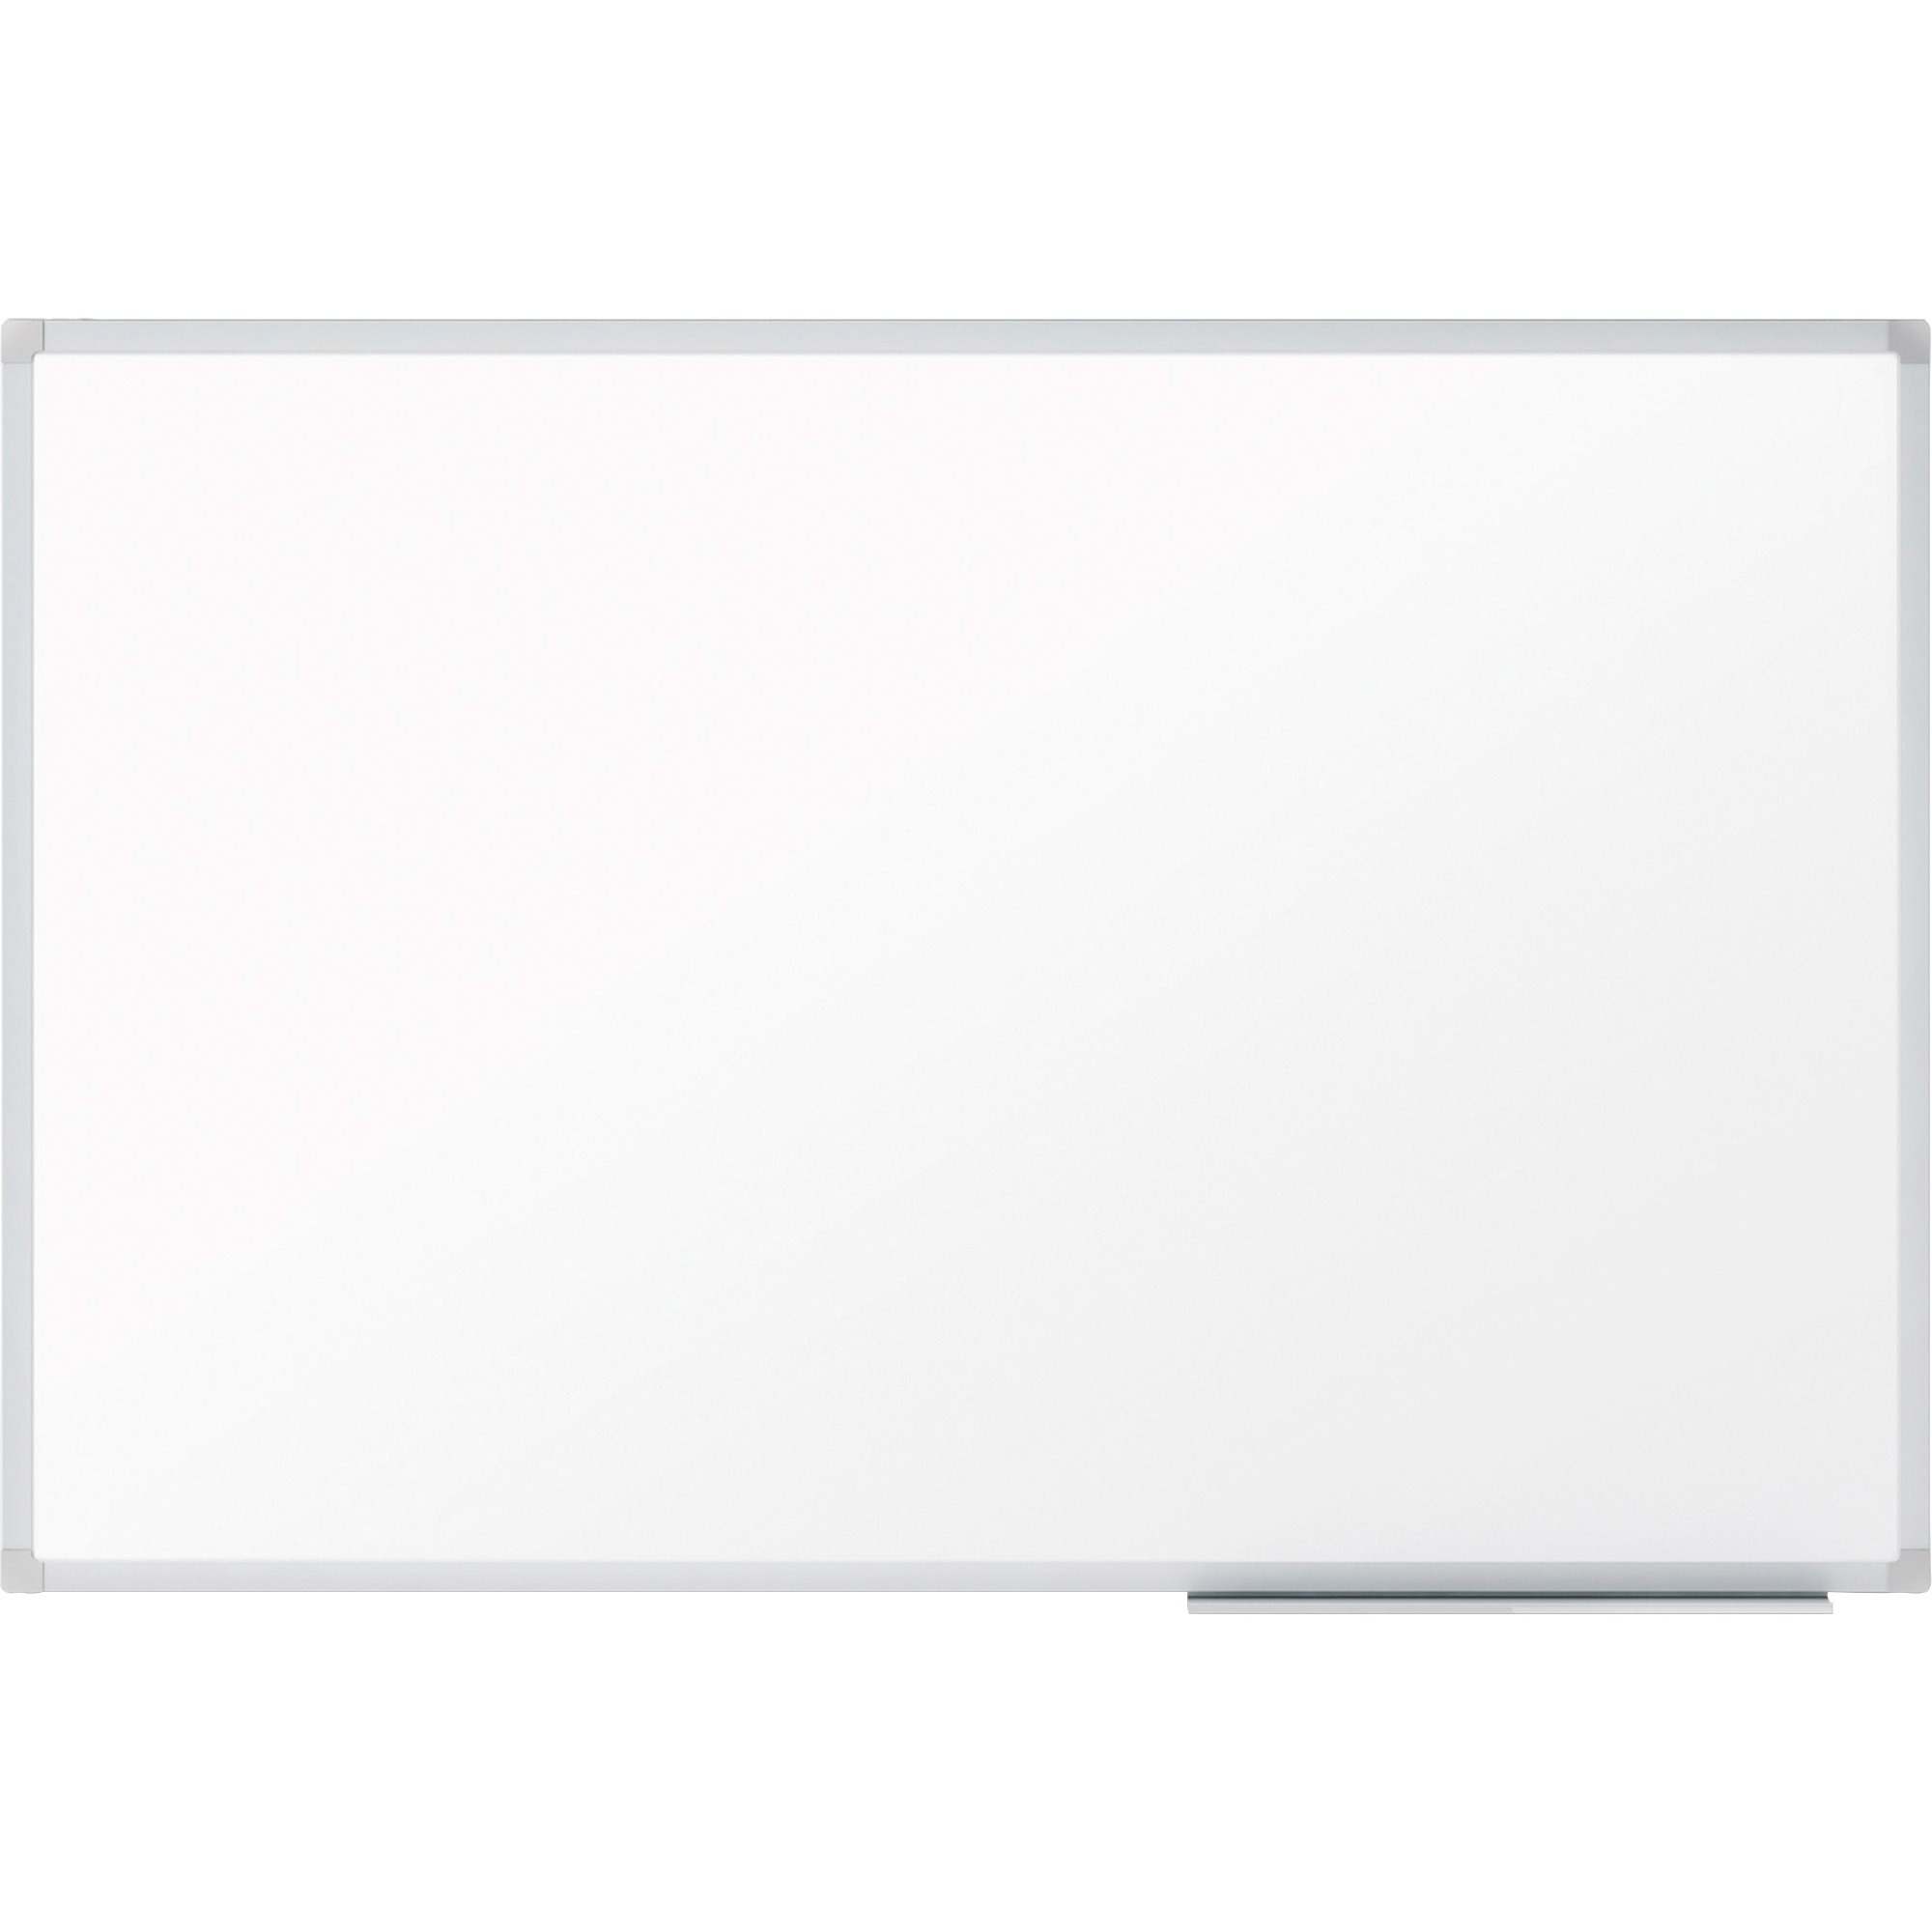 Acco Brands Corporation Mead Dry-erase Board With Marker Tray - 96.6 (8.1 Ft) Width X 48.6 (4.1 Ft) Height - White Melamine Surface - Silver Aluminum Frame - Wall Mount - 1 Each